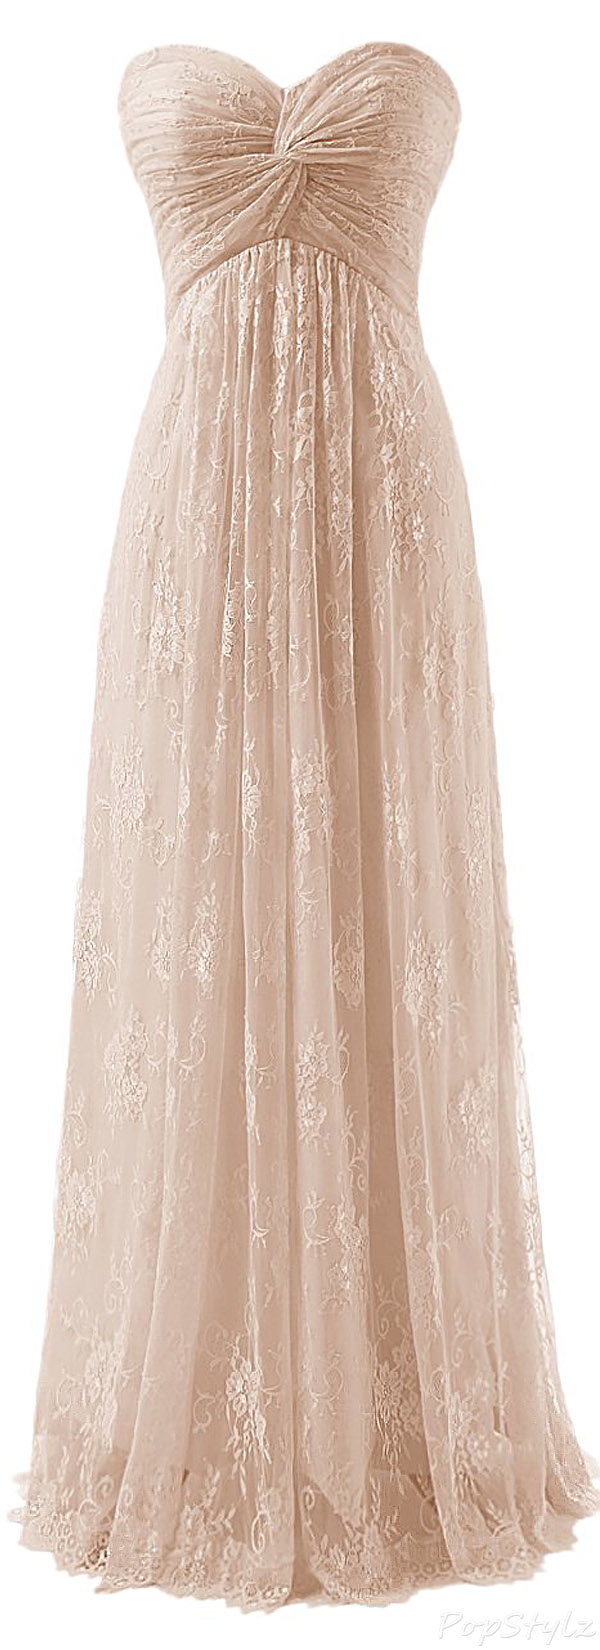 Diyouth Strapless Lace Flowers Evening Gown